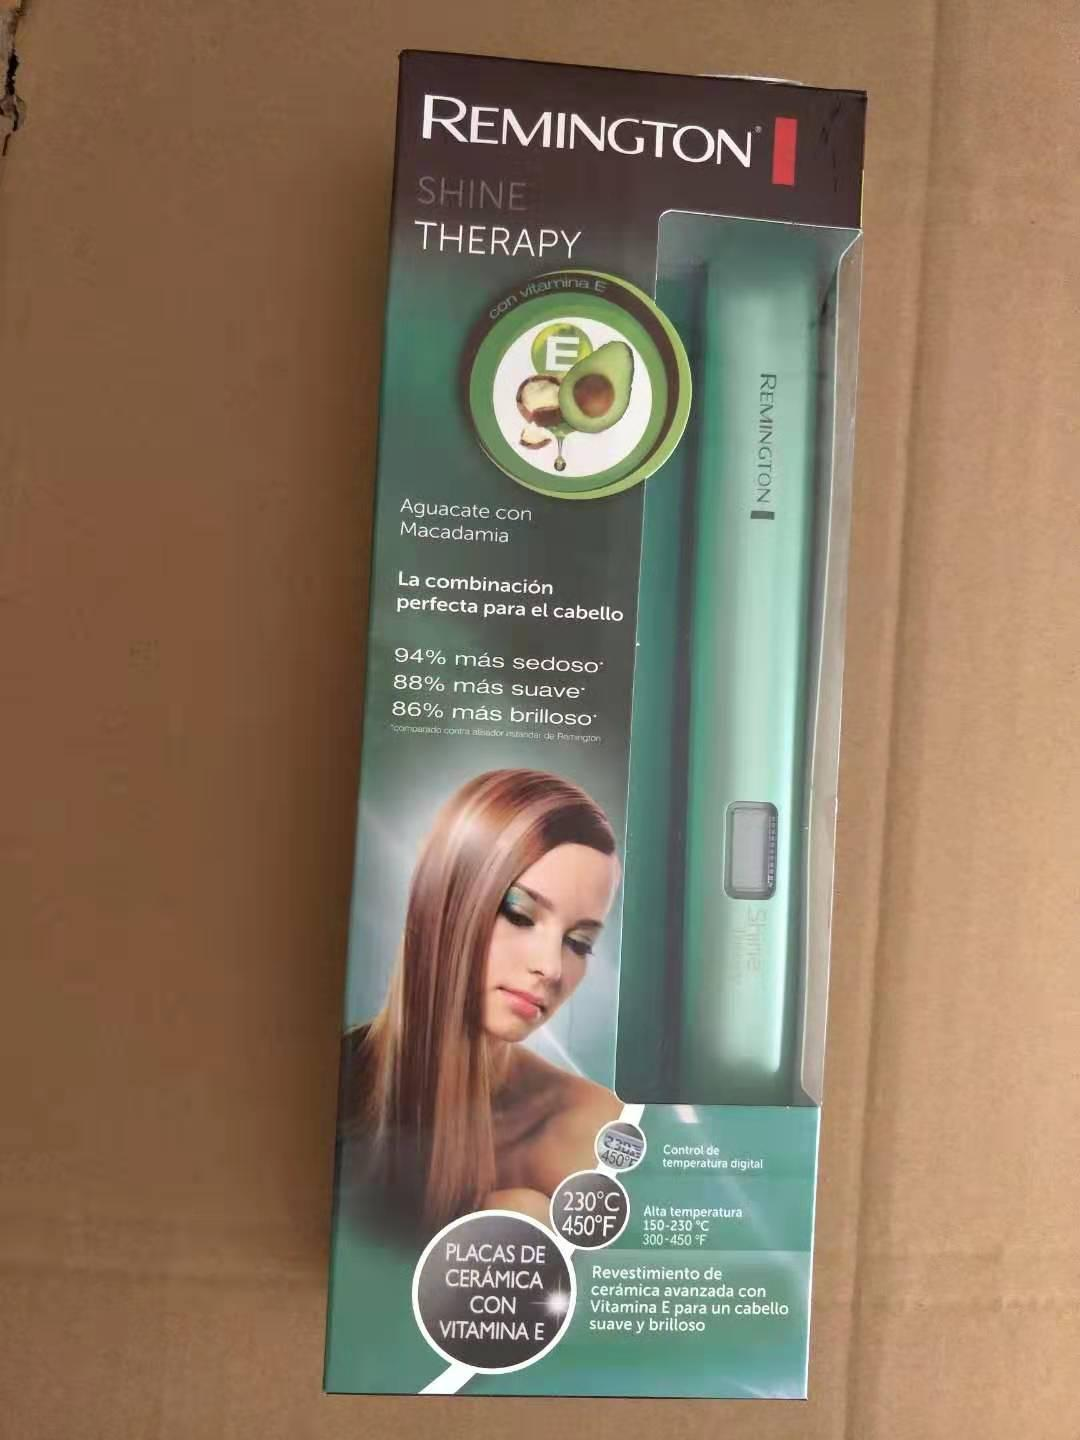 Remington SHINE THERAPY plancha de cabello remington s9960 Flat Iron for Hair 1